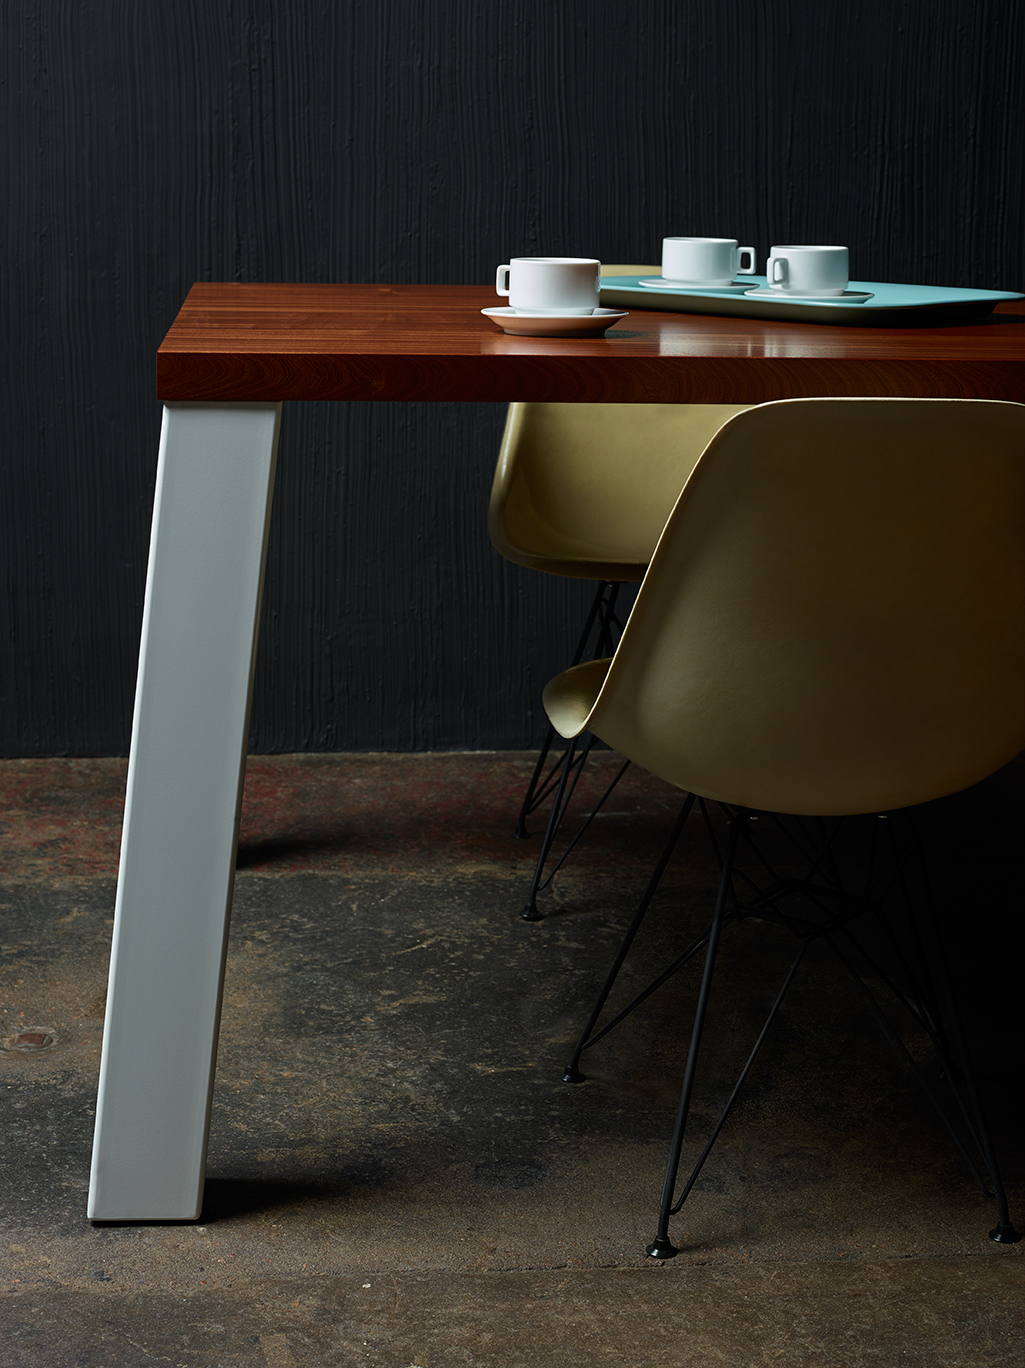 New semi-custom dining table from Where Wood Meets Steel